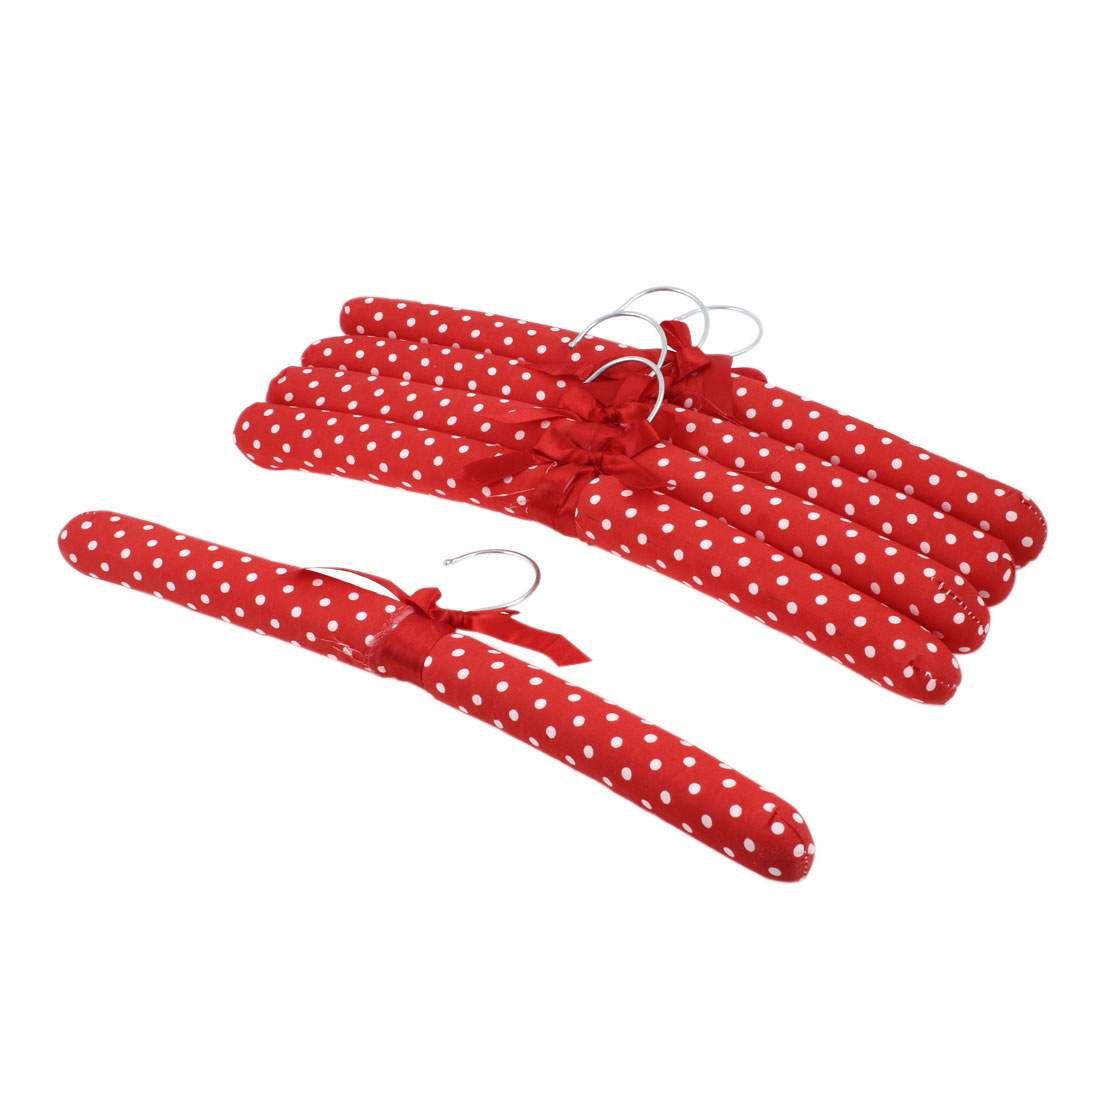 5pcs Red Nylon Wrapped Wood Metal Hook Clothing Pants Shirts Hangers